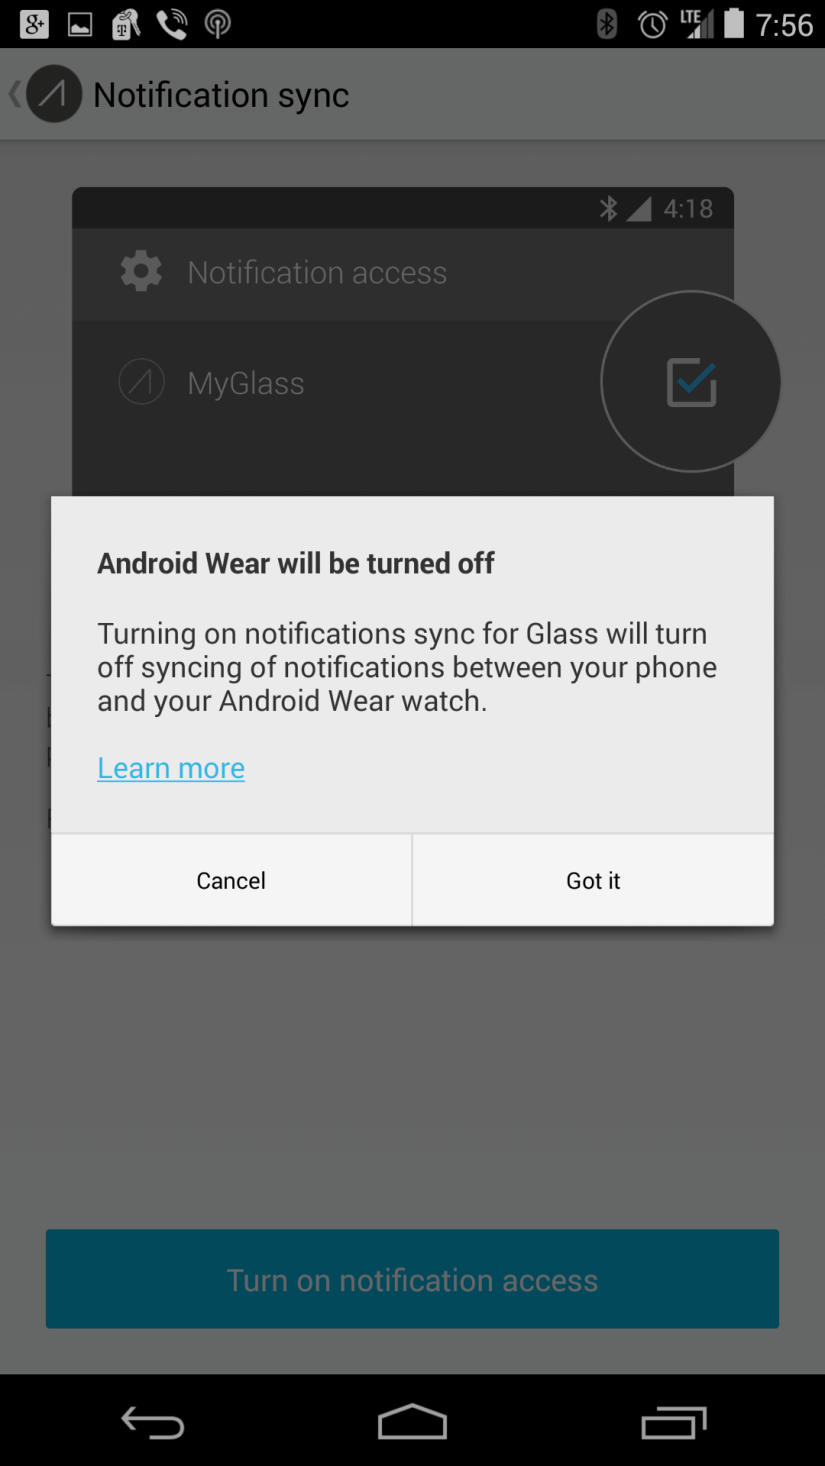 +Google Glass - I got the update to XE22 this morning and was a bit disappointed to see this message. It appears that your cannot use Glass and Android Wear at the same time if you wish to have notifications sent to Glass.  This is a problem for 2 reasons - It cuts off all connectivity to my LG G Watch when enabeled. It is not just no notifications but I also cannot access any other function on the watch that is dependant on a connection to my phone (Music controls/Google Now Cards/Keep/Notes/etc). It essentially is like disabling Bluetooth. -I love to wear Glass but there are times that I dont, such as in a closed door meeting. I still love having notifications on my watch. The process to toggle between devices is a bit convoluted.